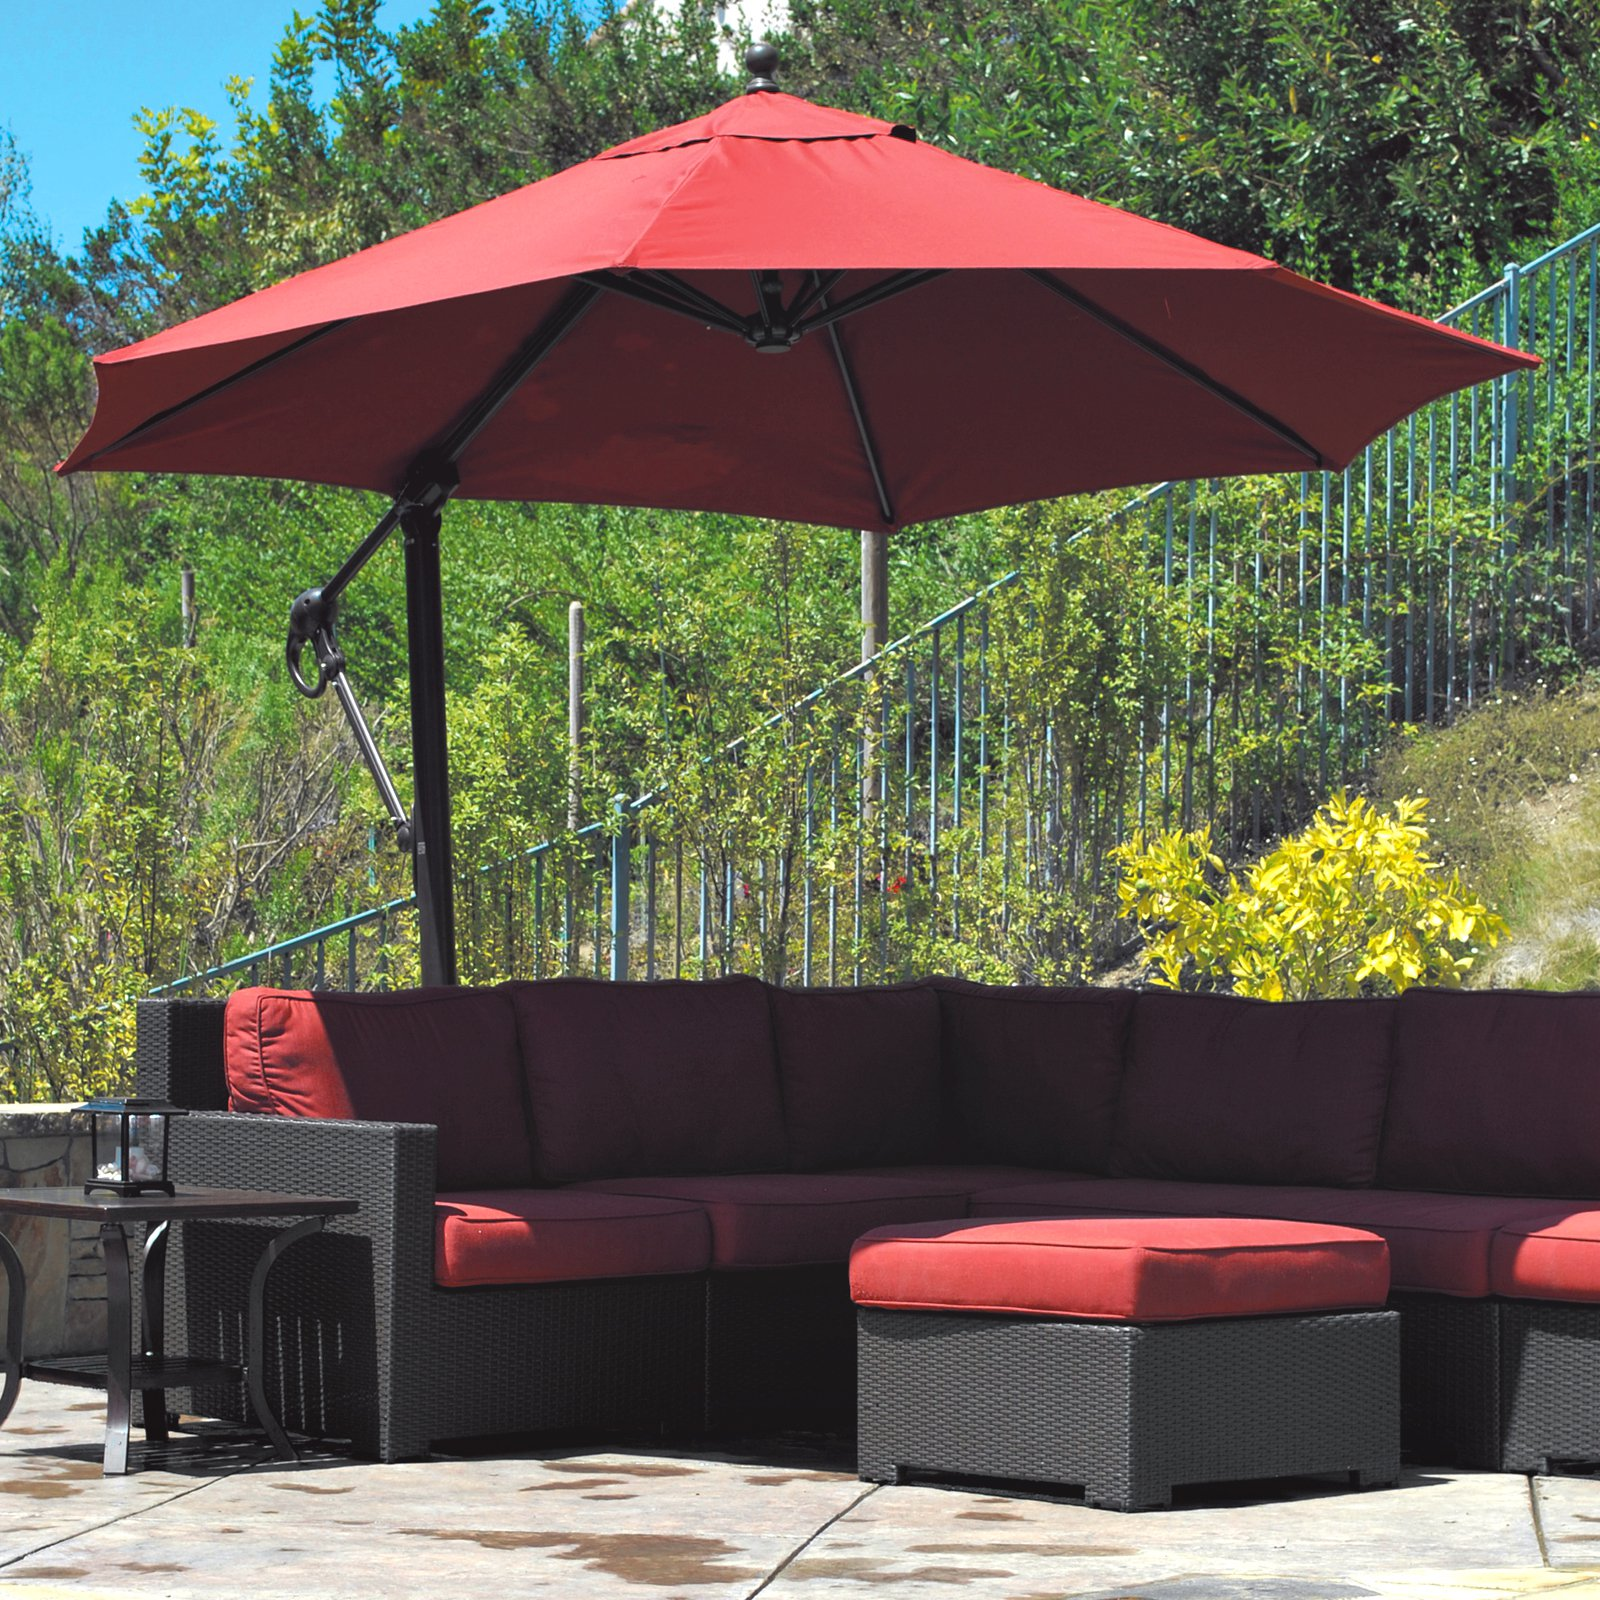 offset patio umbrella for shade from